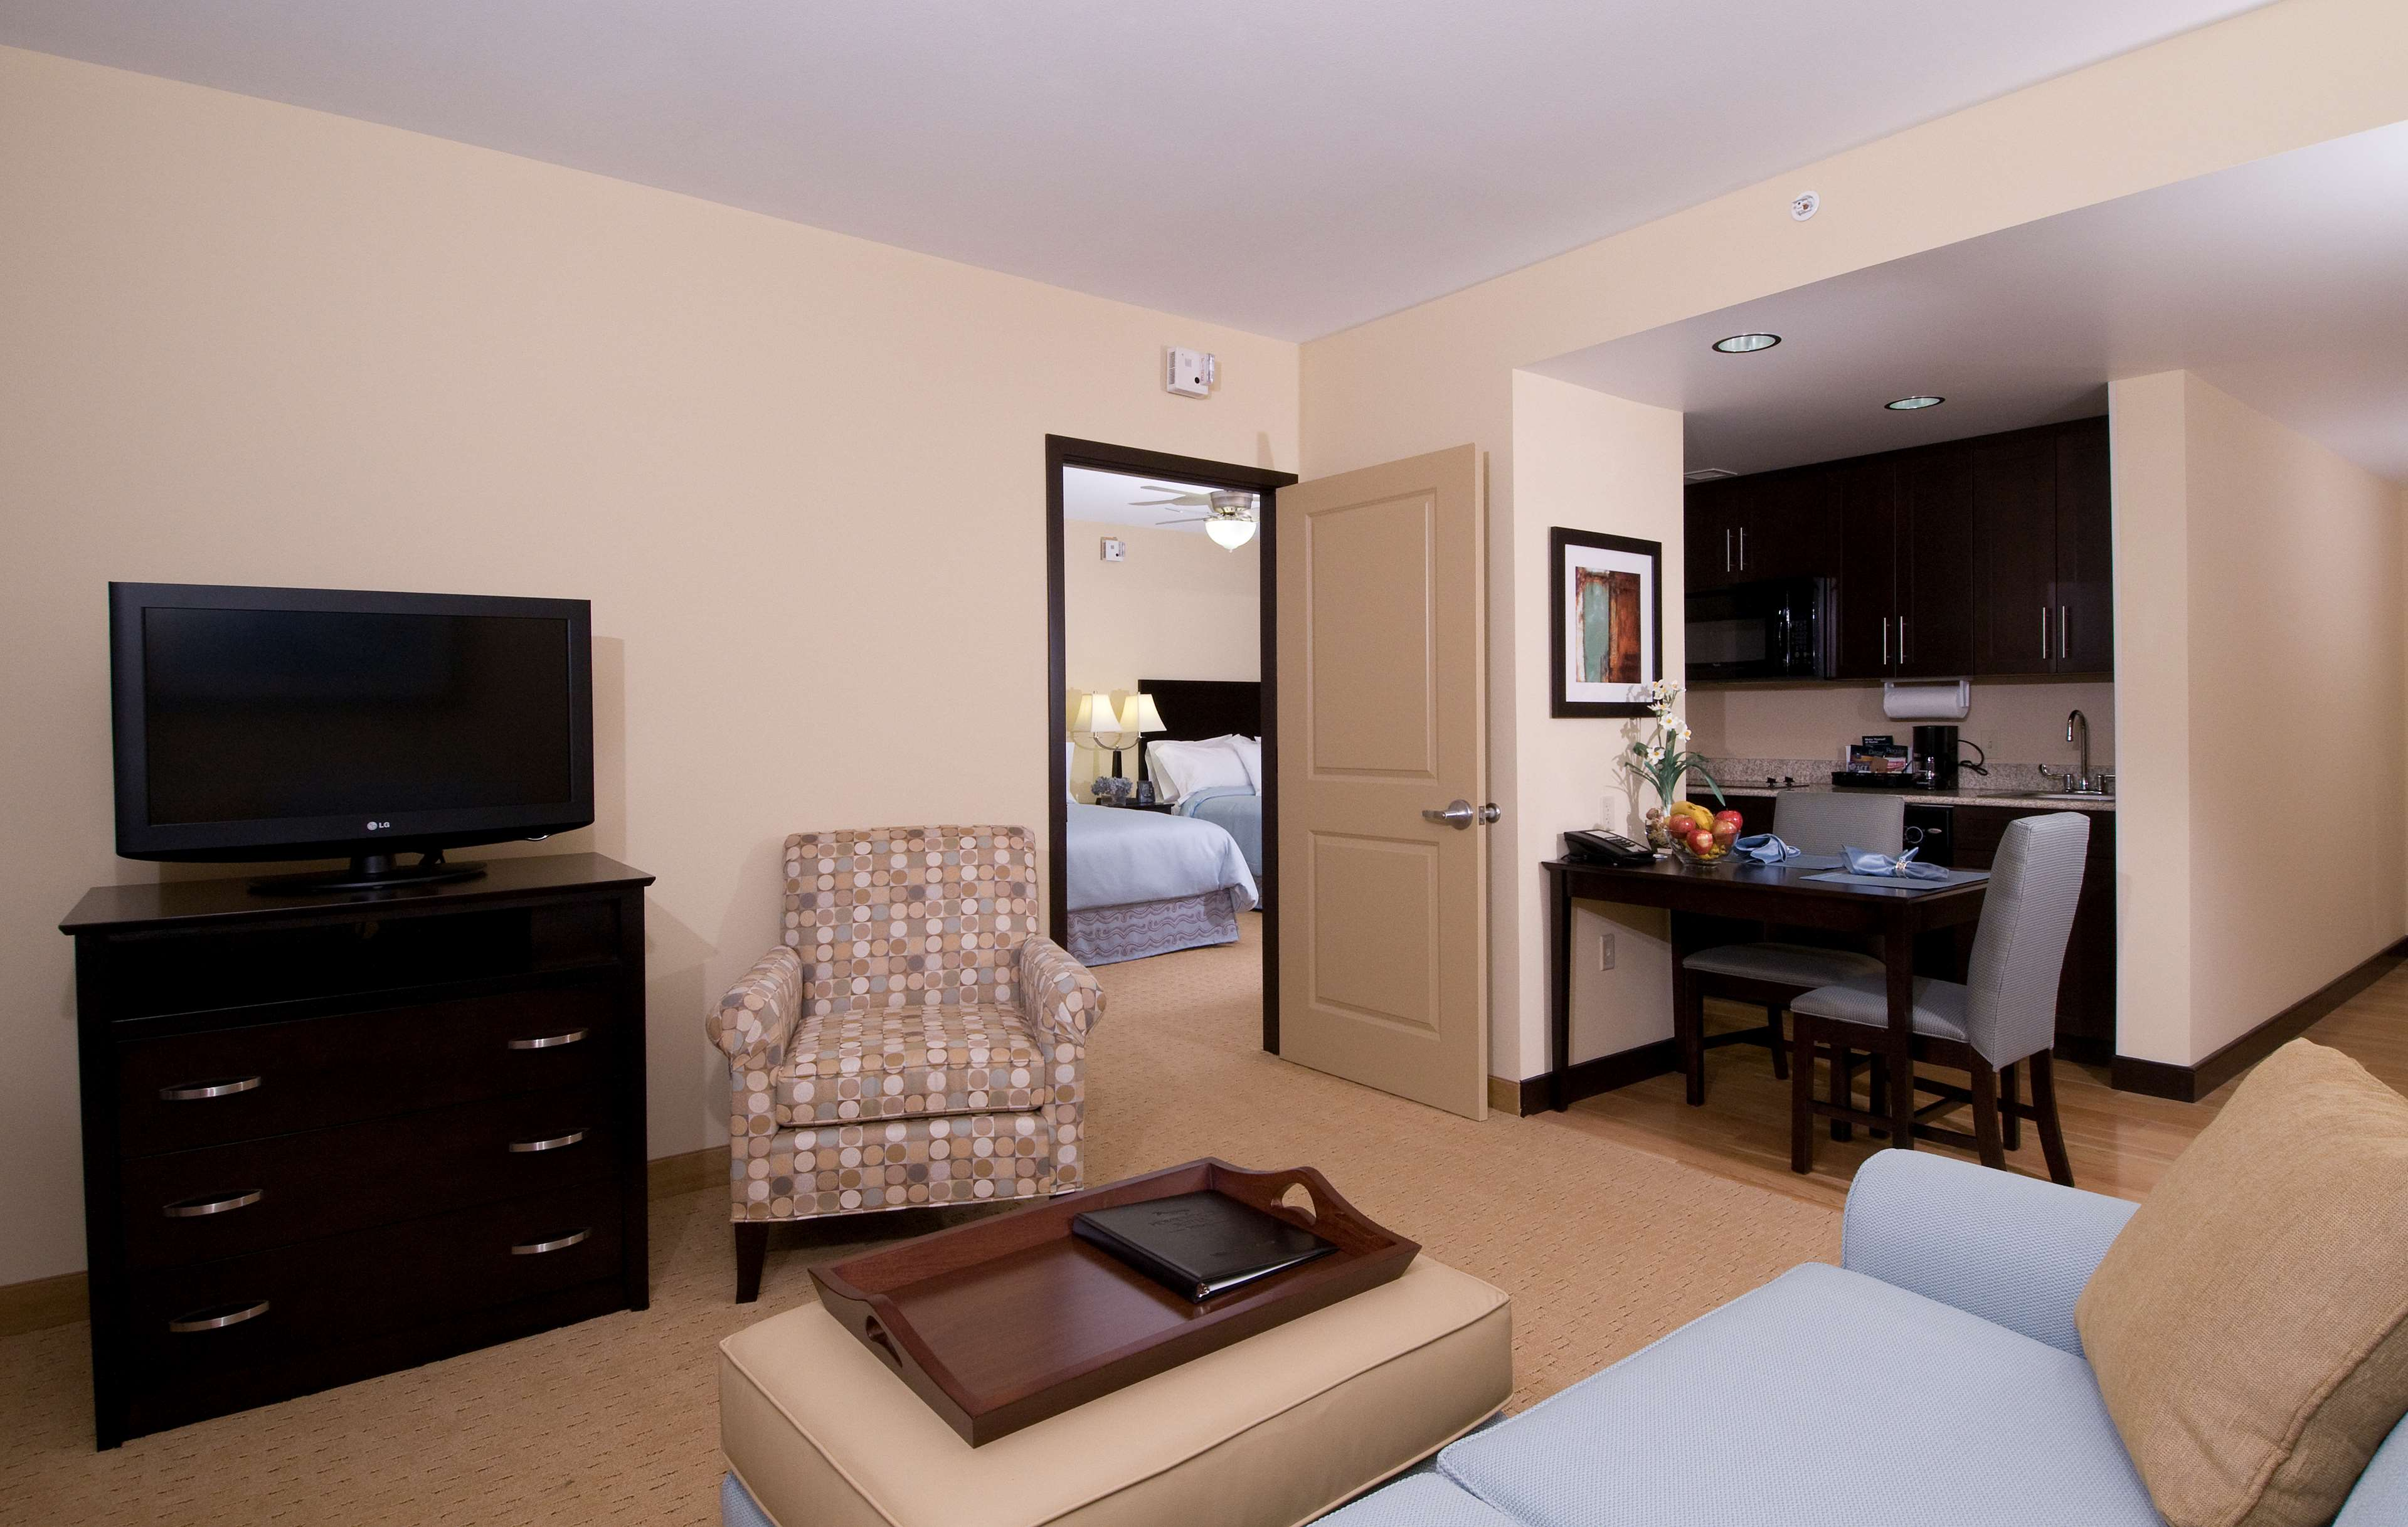 Homewood Suites by Hilton Port St. Lucie-Tradition image 6